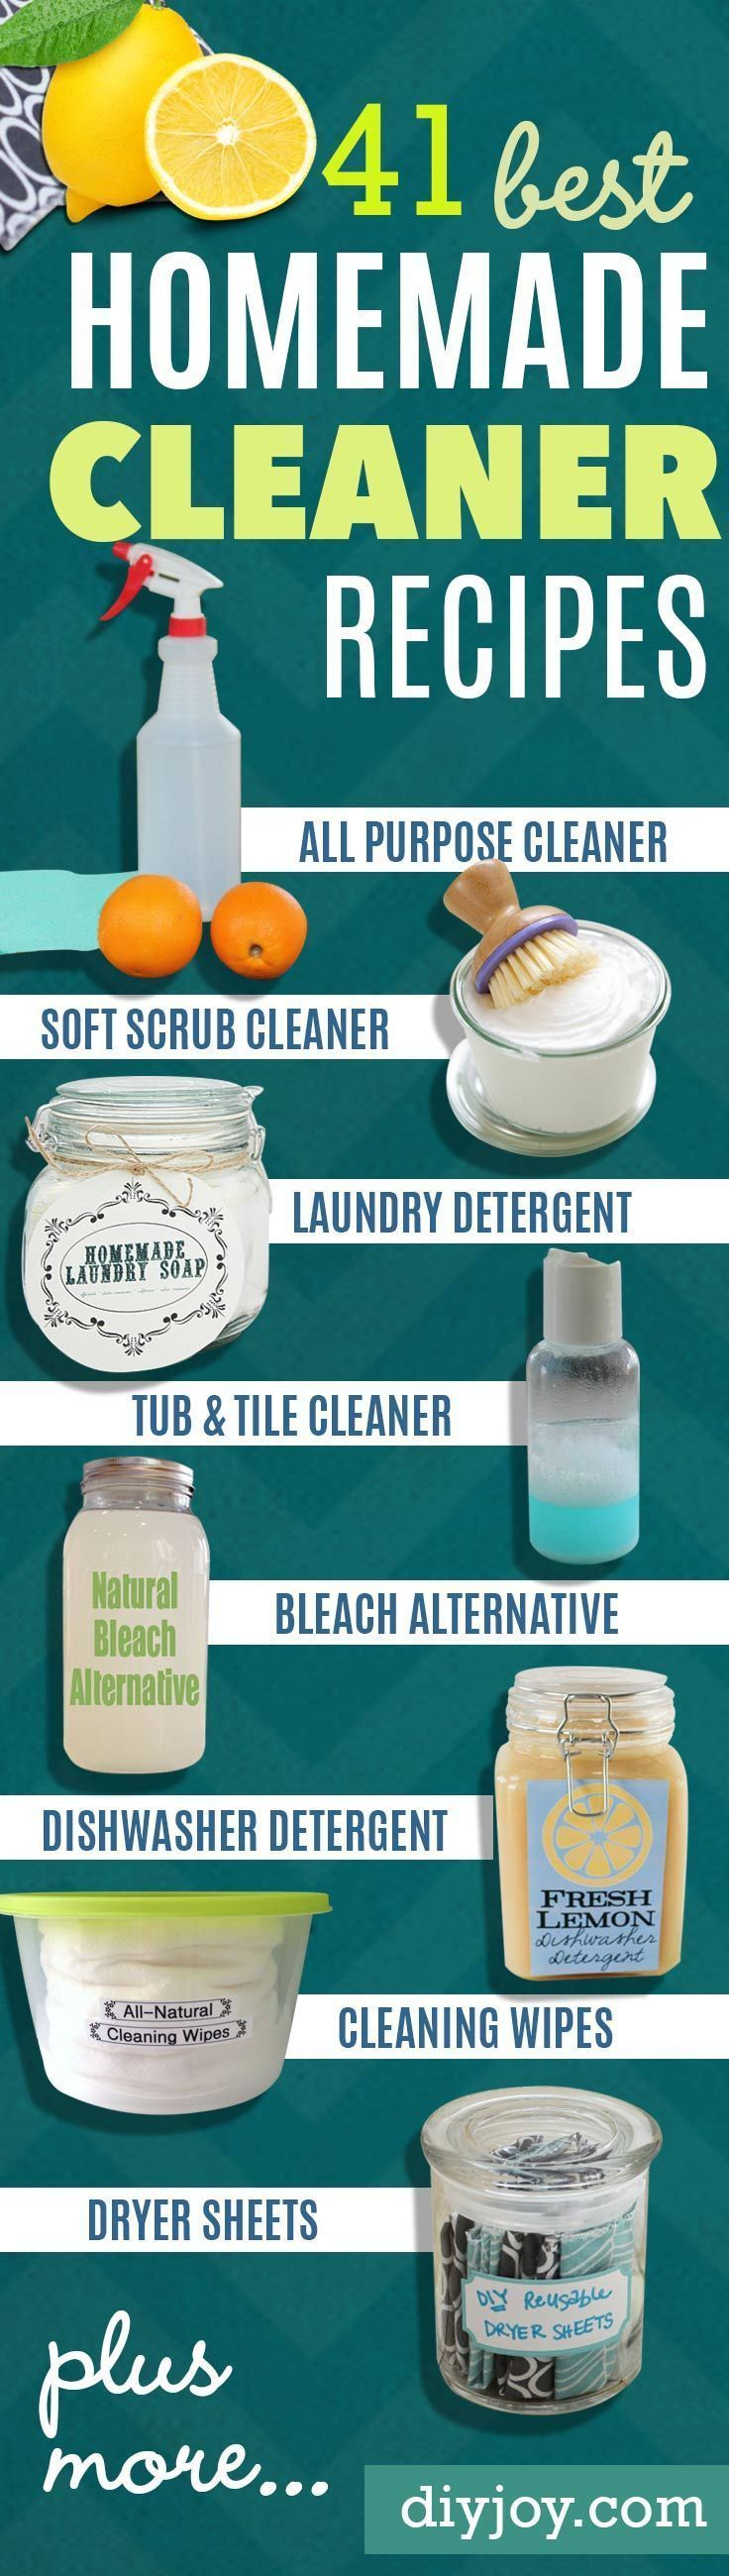 Wonderful Best Natural Homemade DIY Cleaners And Recipes   All Purposed Home Care And  Cleaning With Vinegar